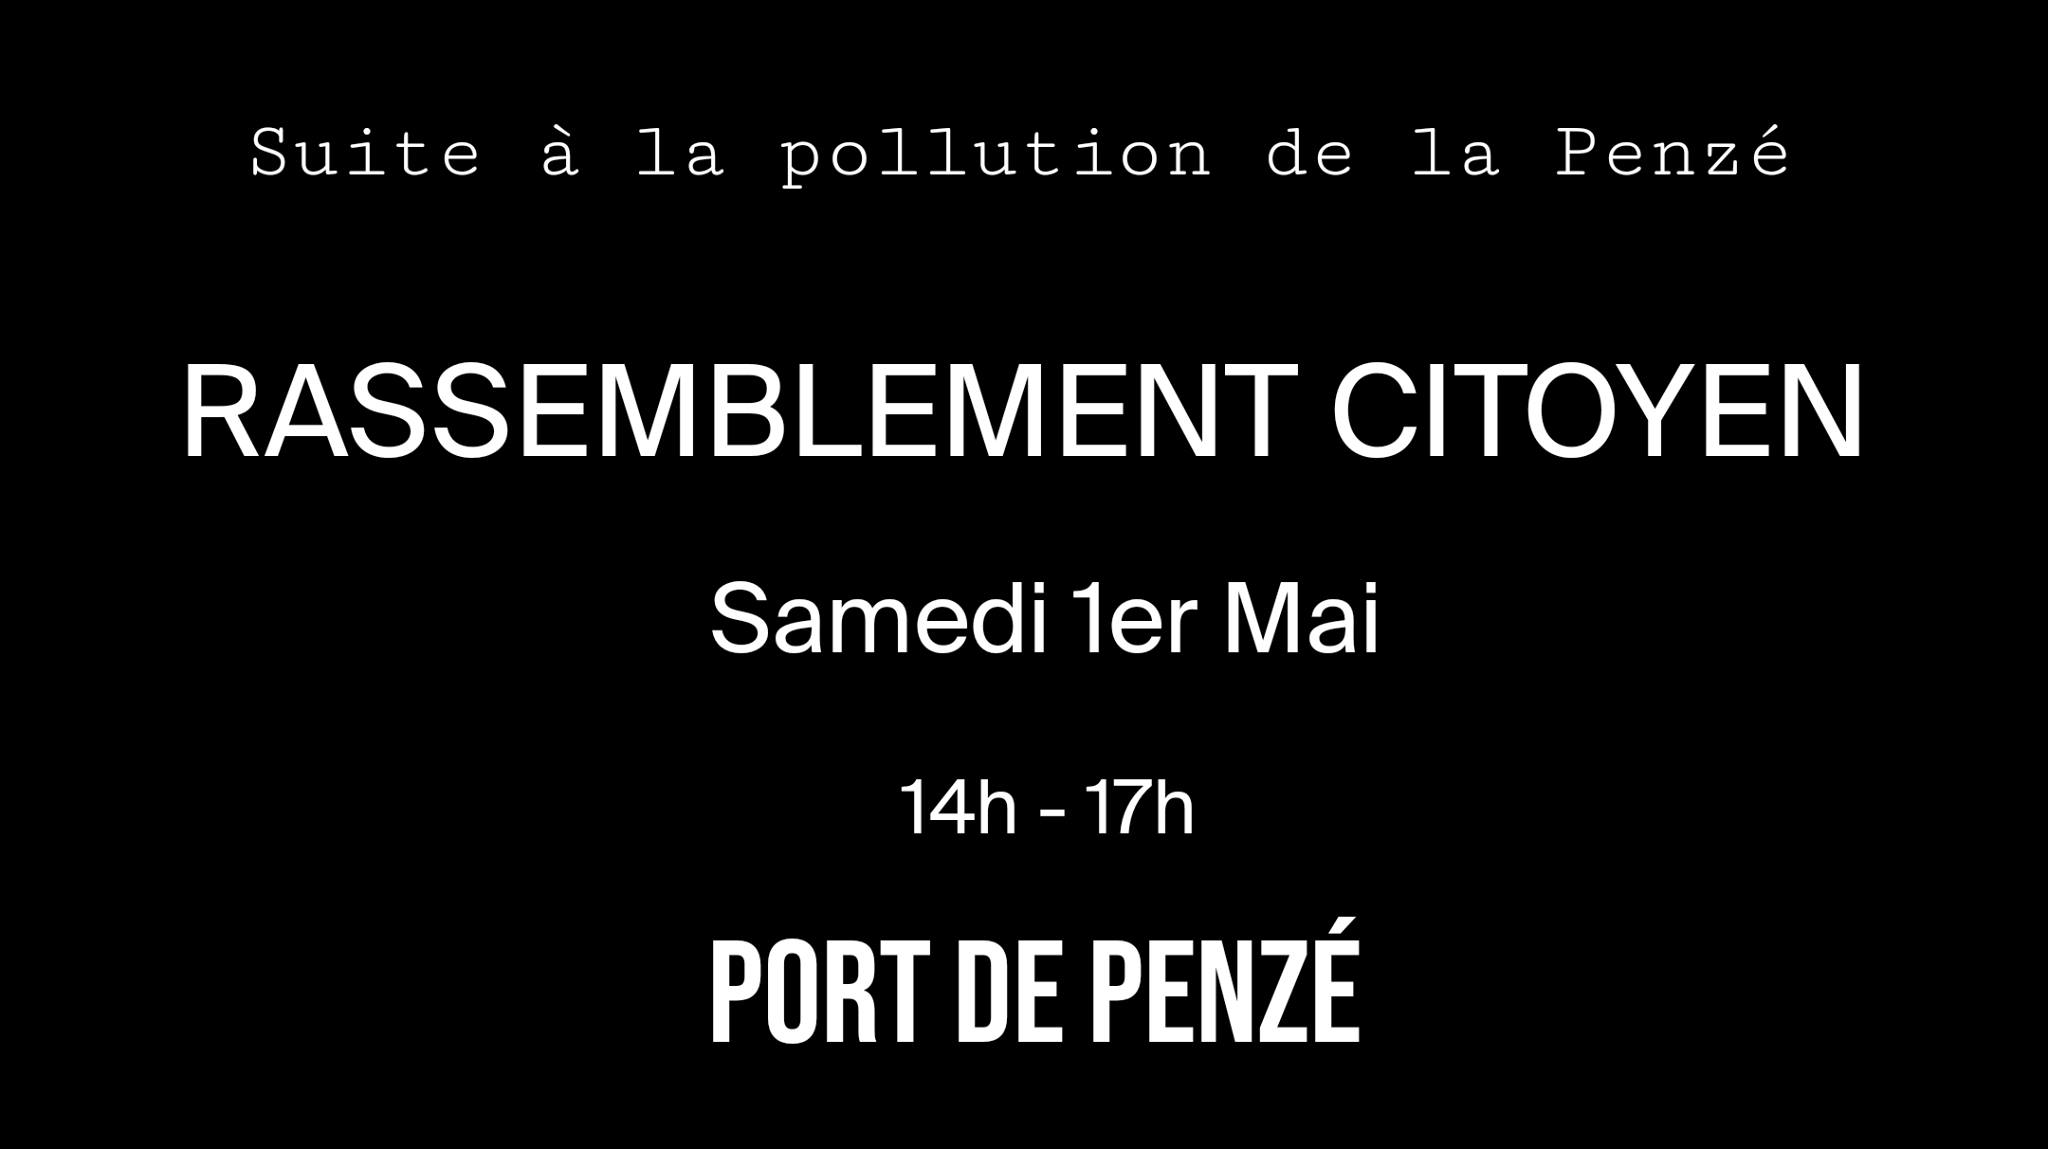 Taulé (29), Rassemblement citoyen suite à la pollution au lisier de la Penzé